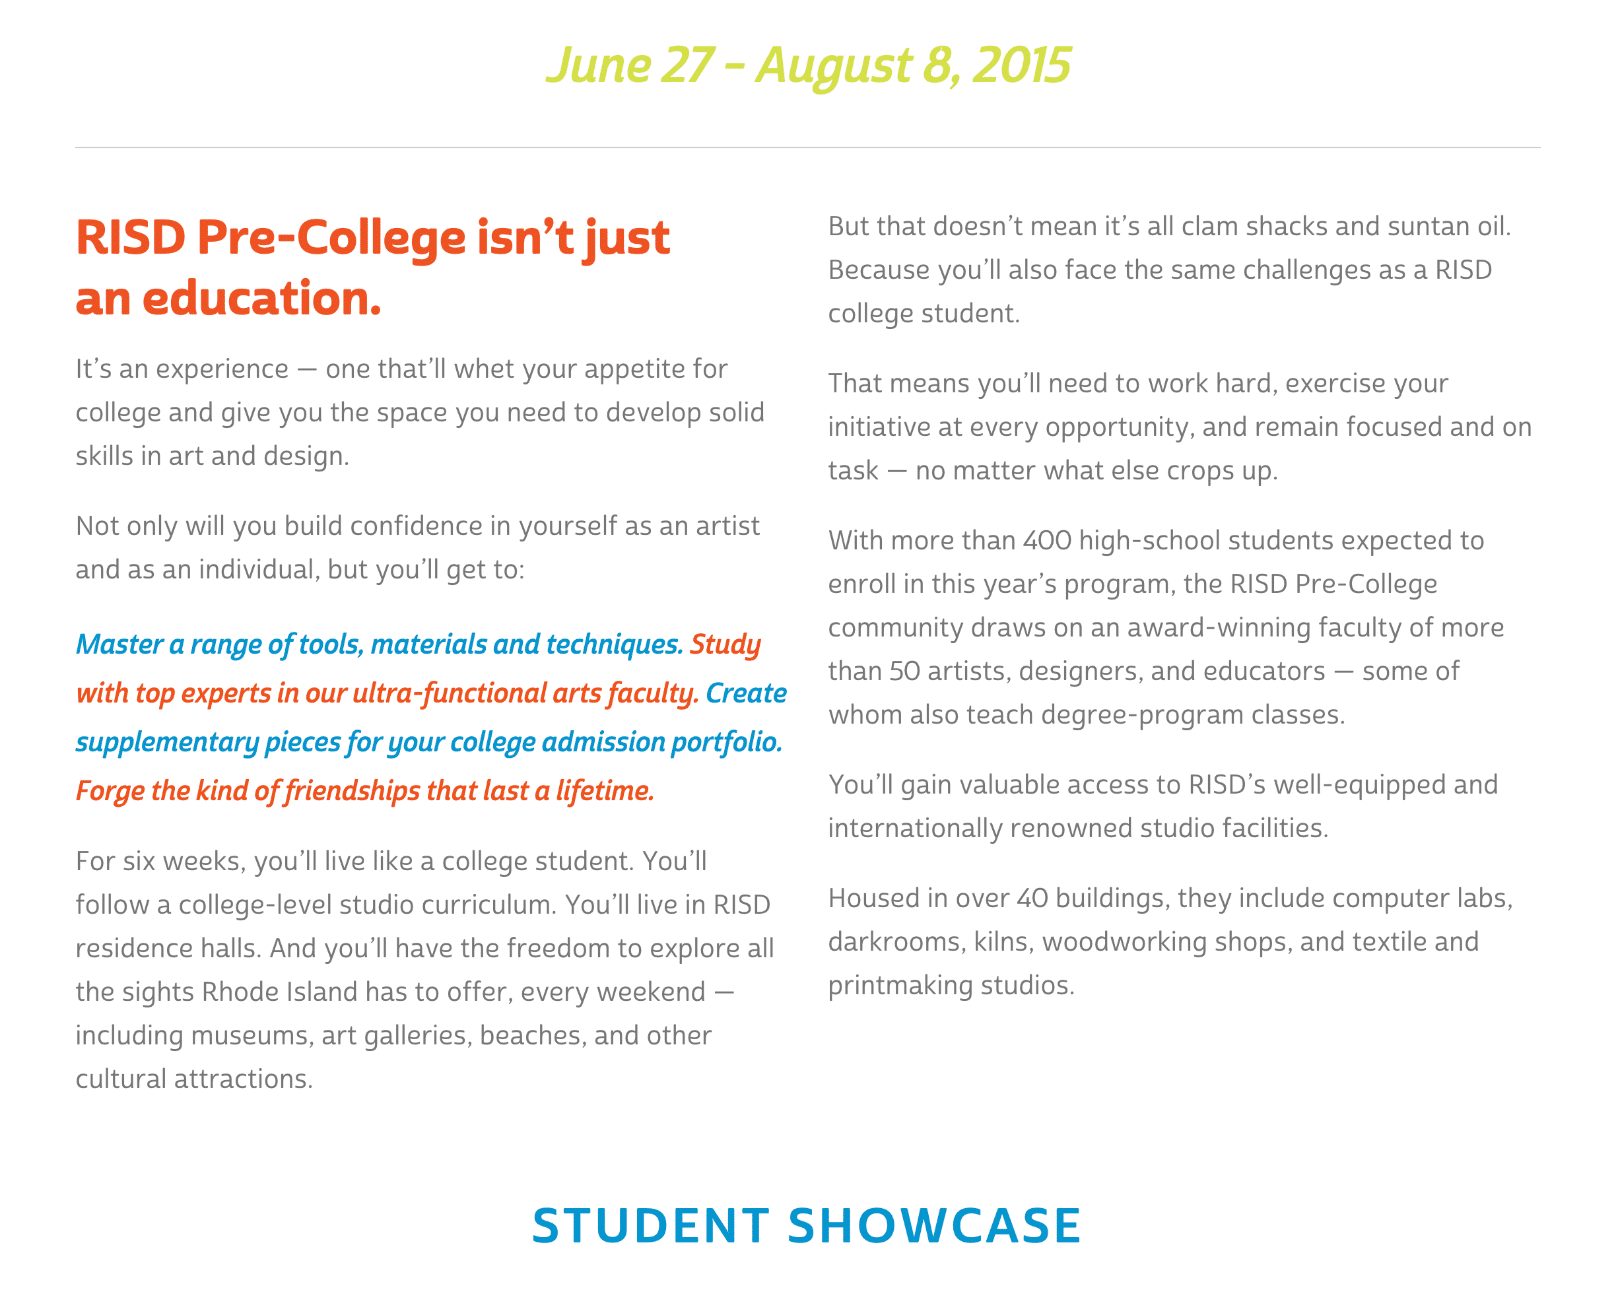 responsive web design and development for RISD in Providence, Rhode Island (RI)